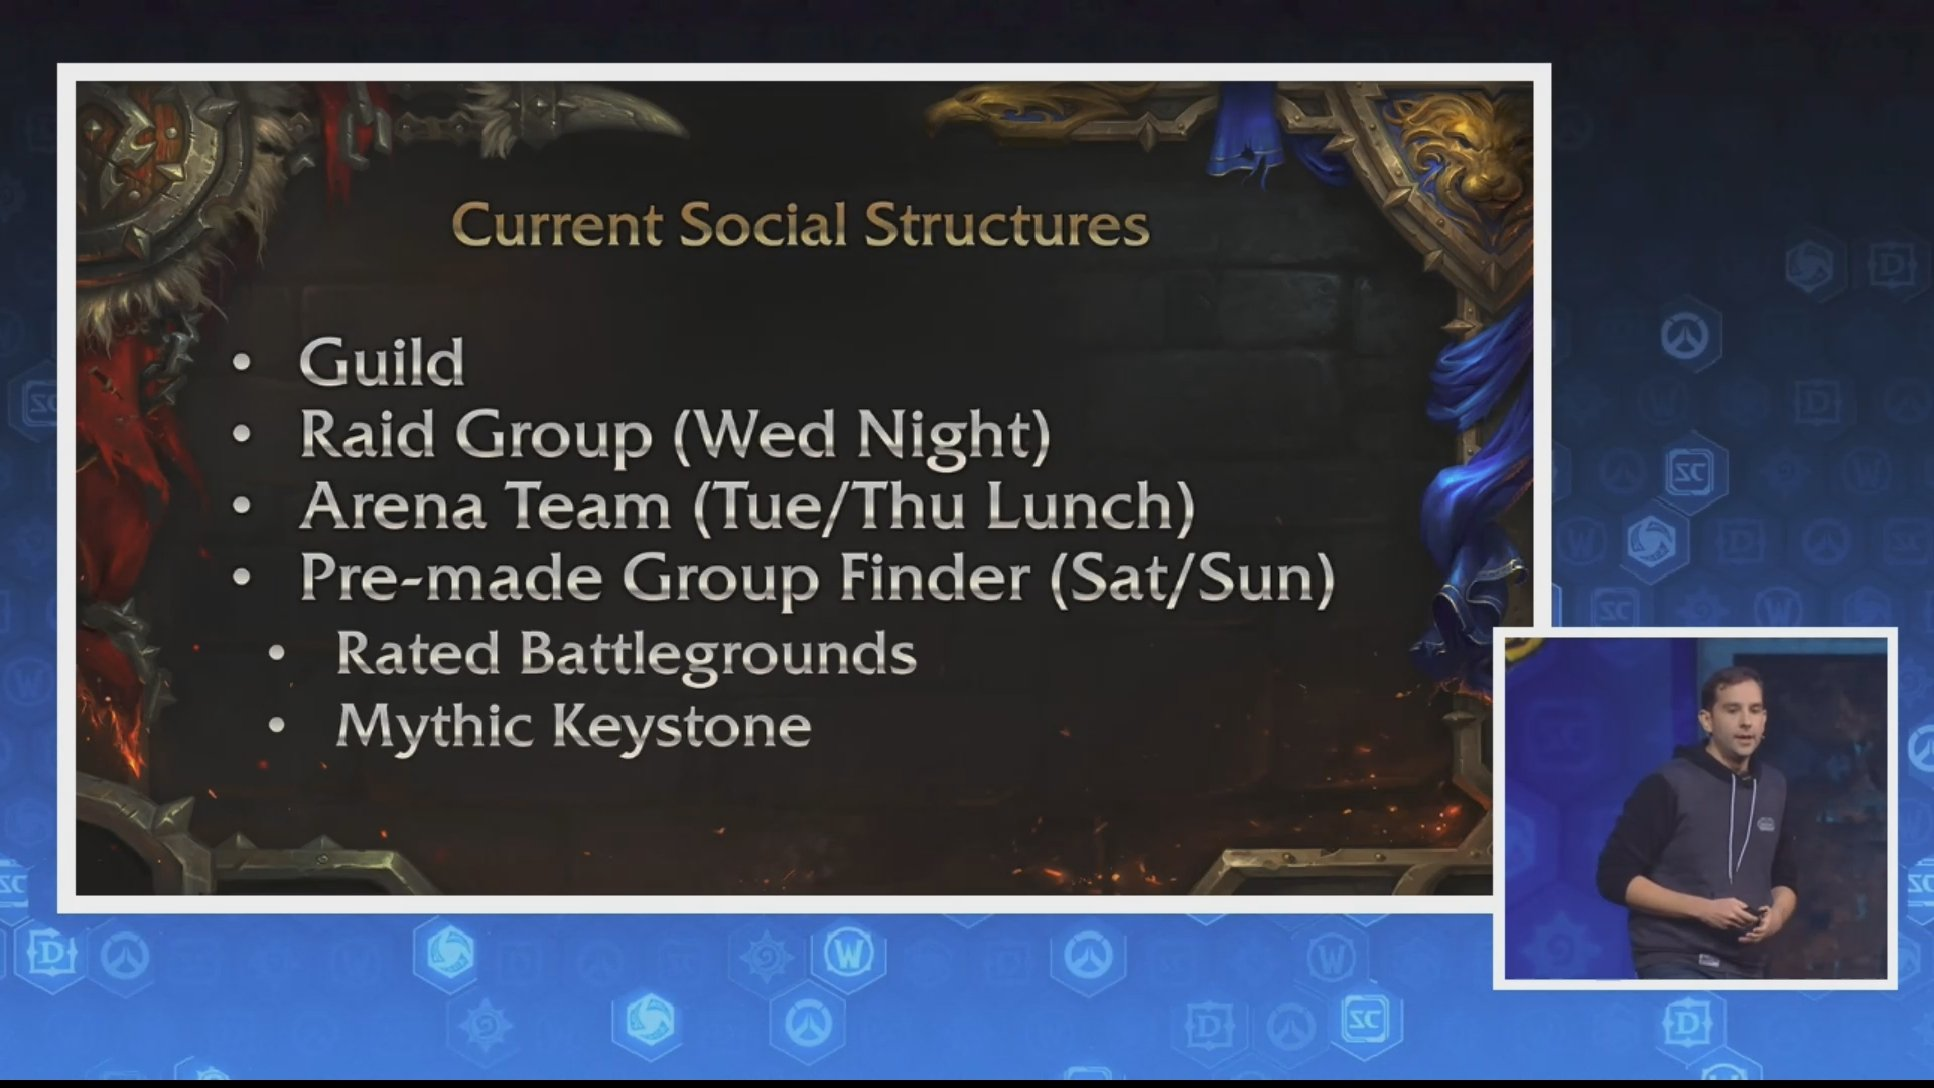 BlizzCon 2017 World of Warcraft: Gameplay and Systems Panel